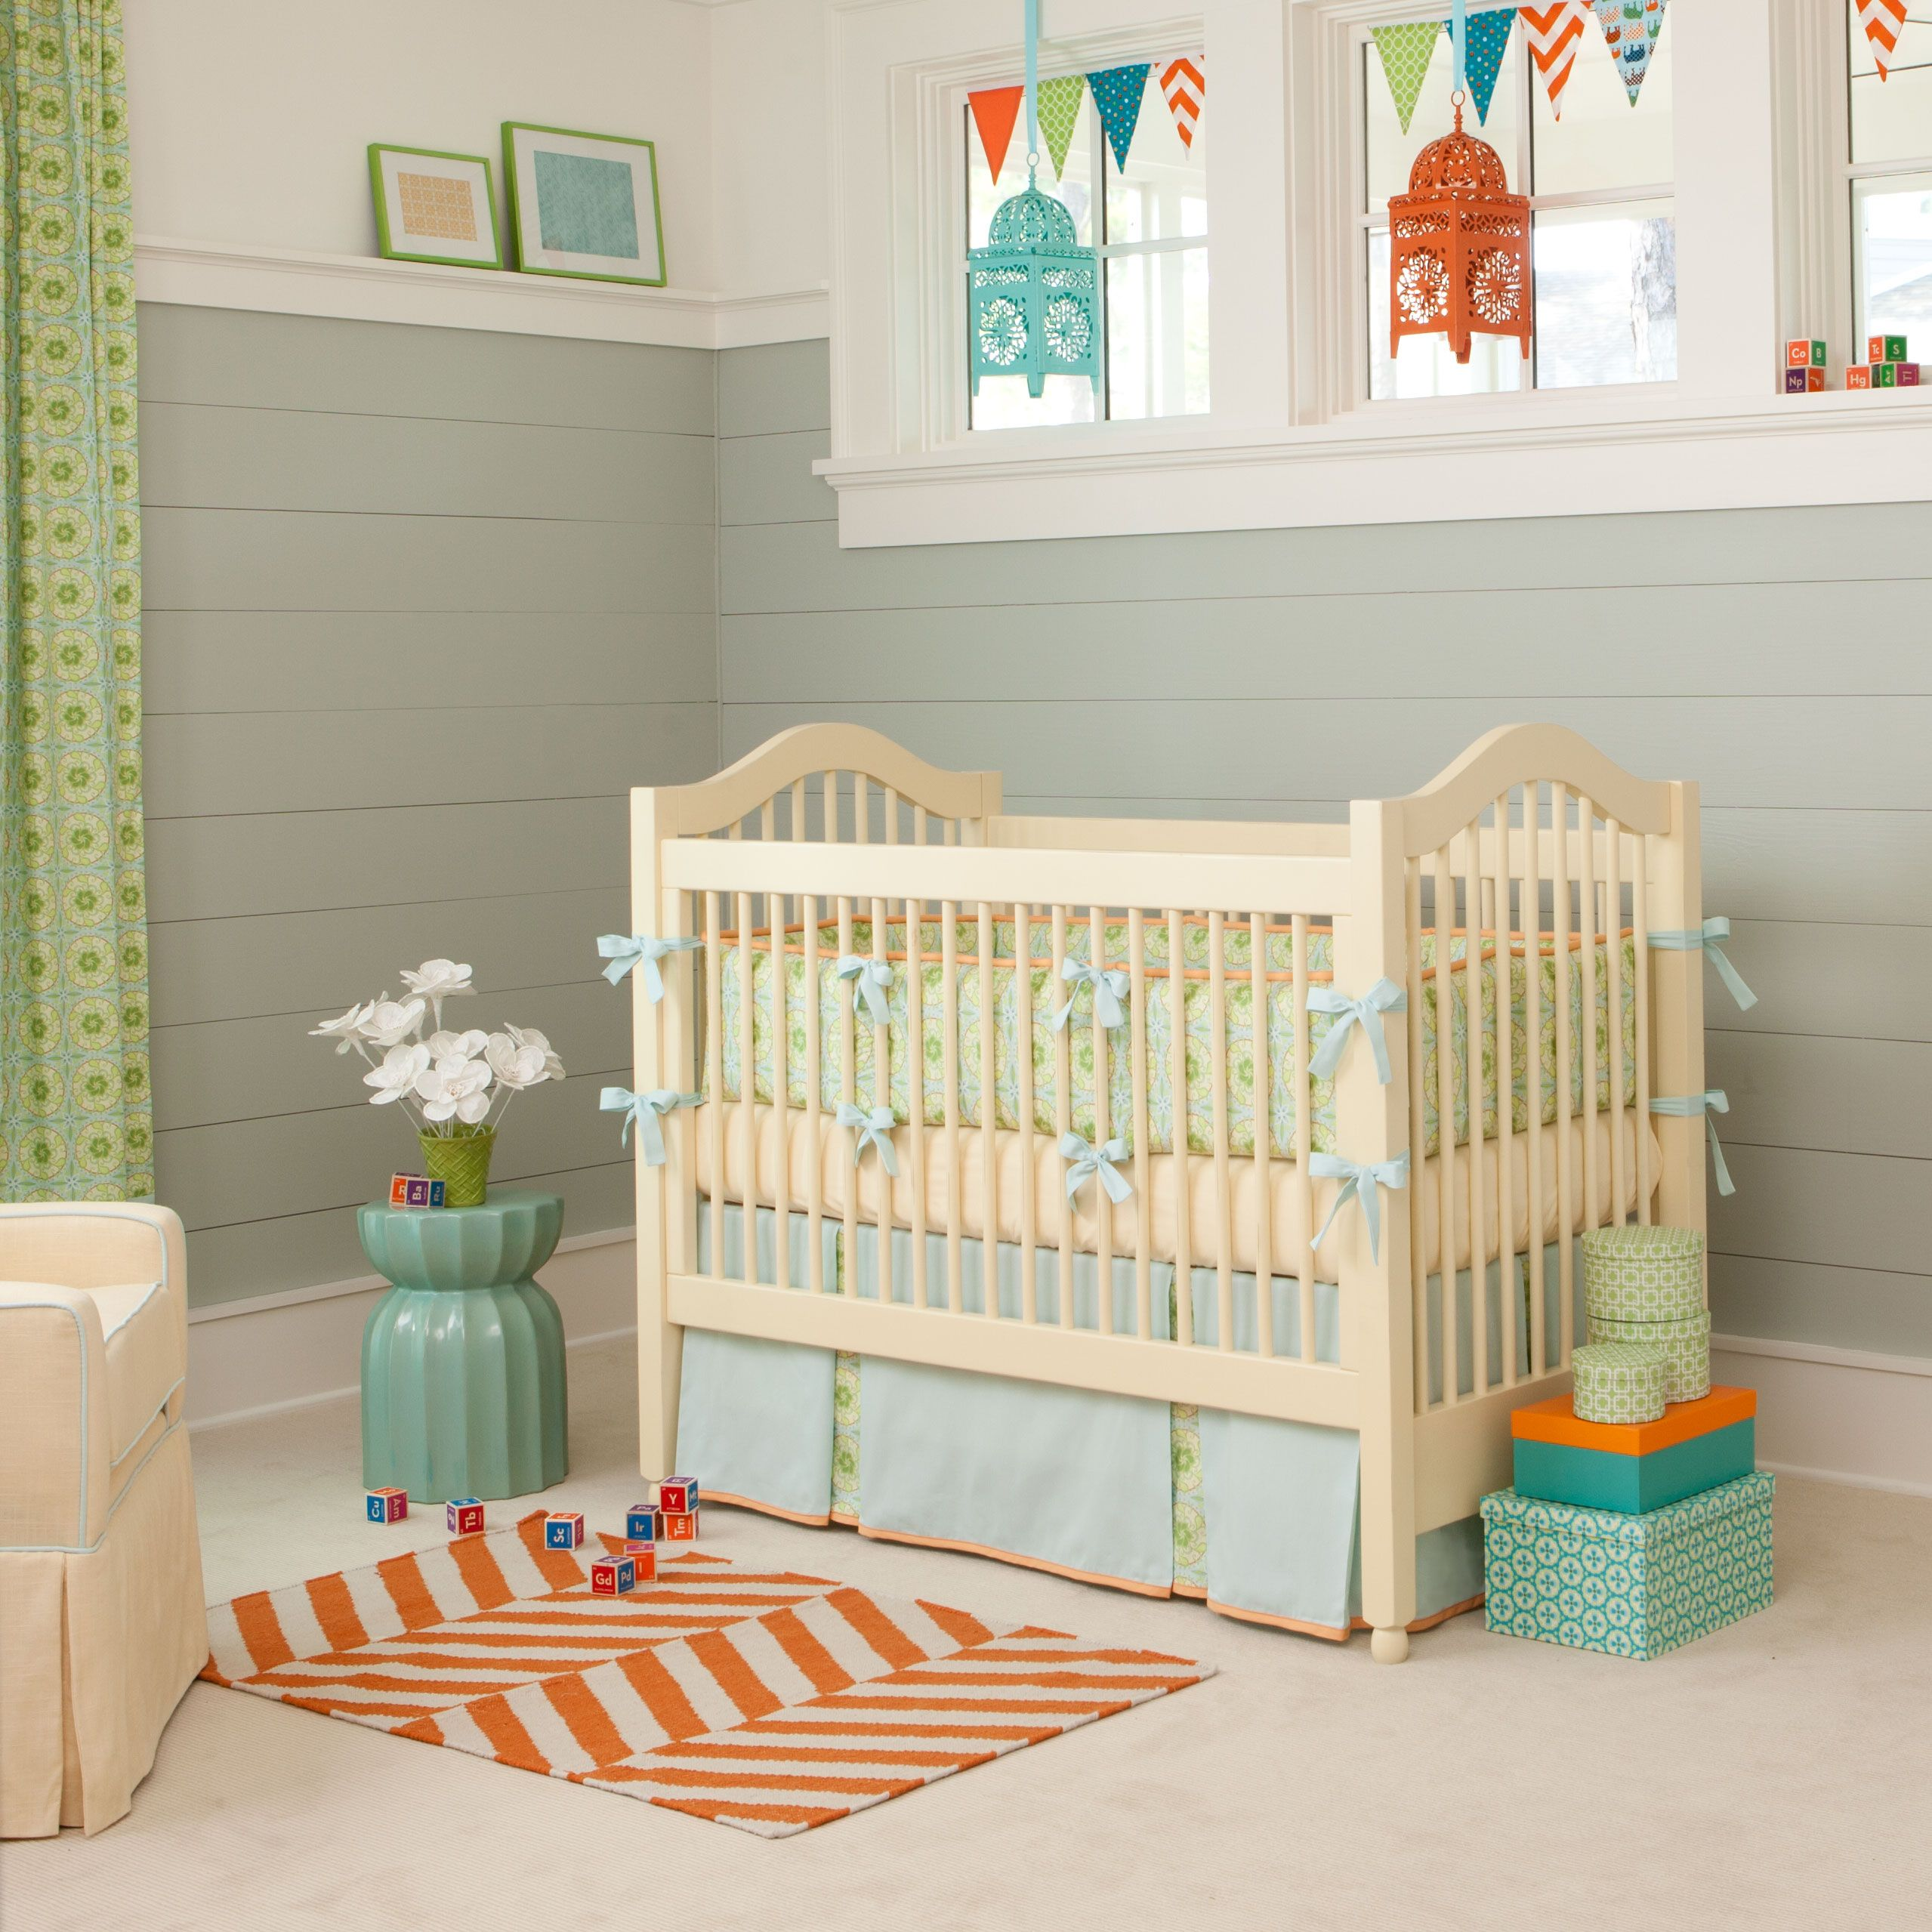 1000+ images about baby room on pinterest | scandinavian nursery